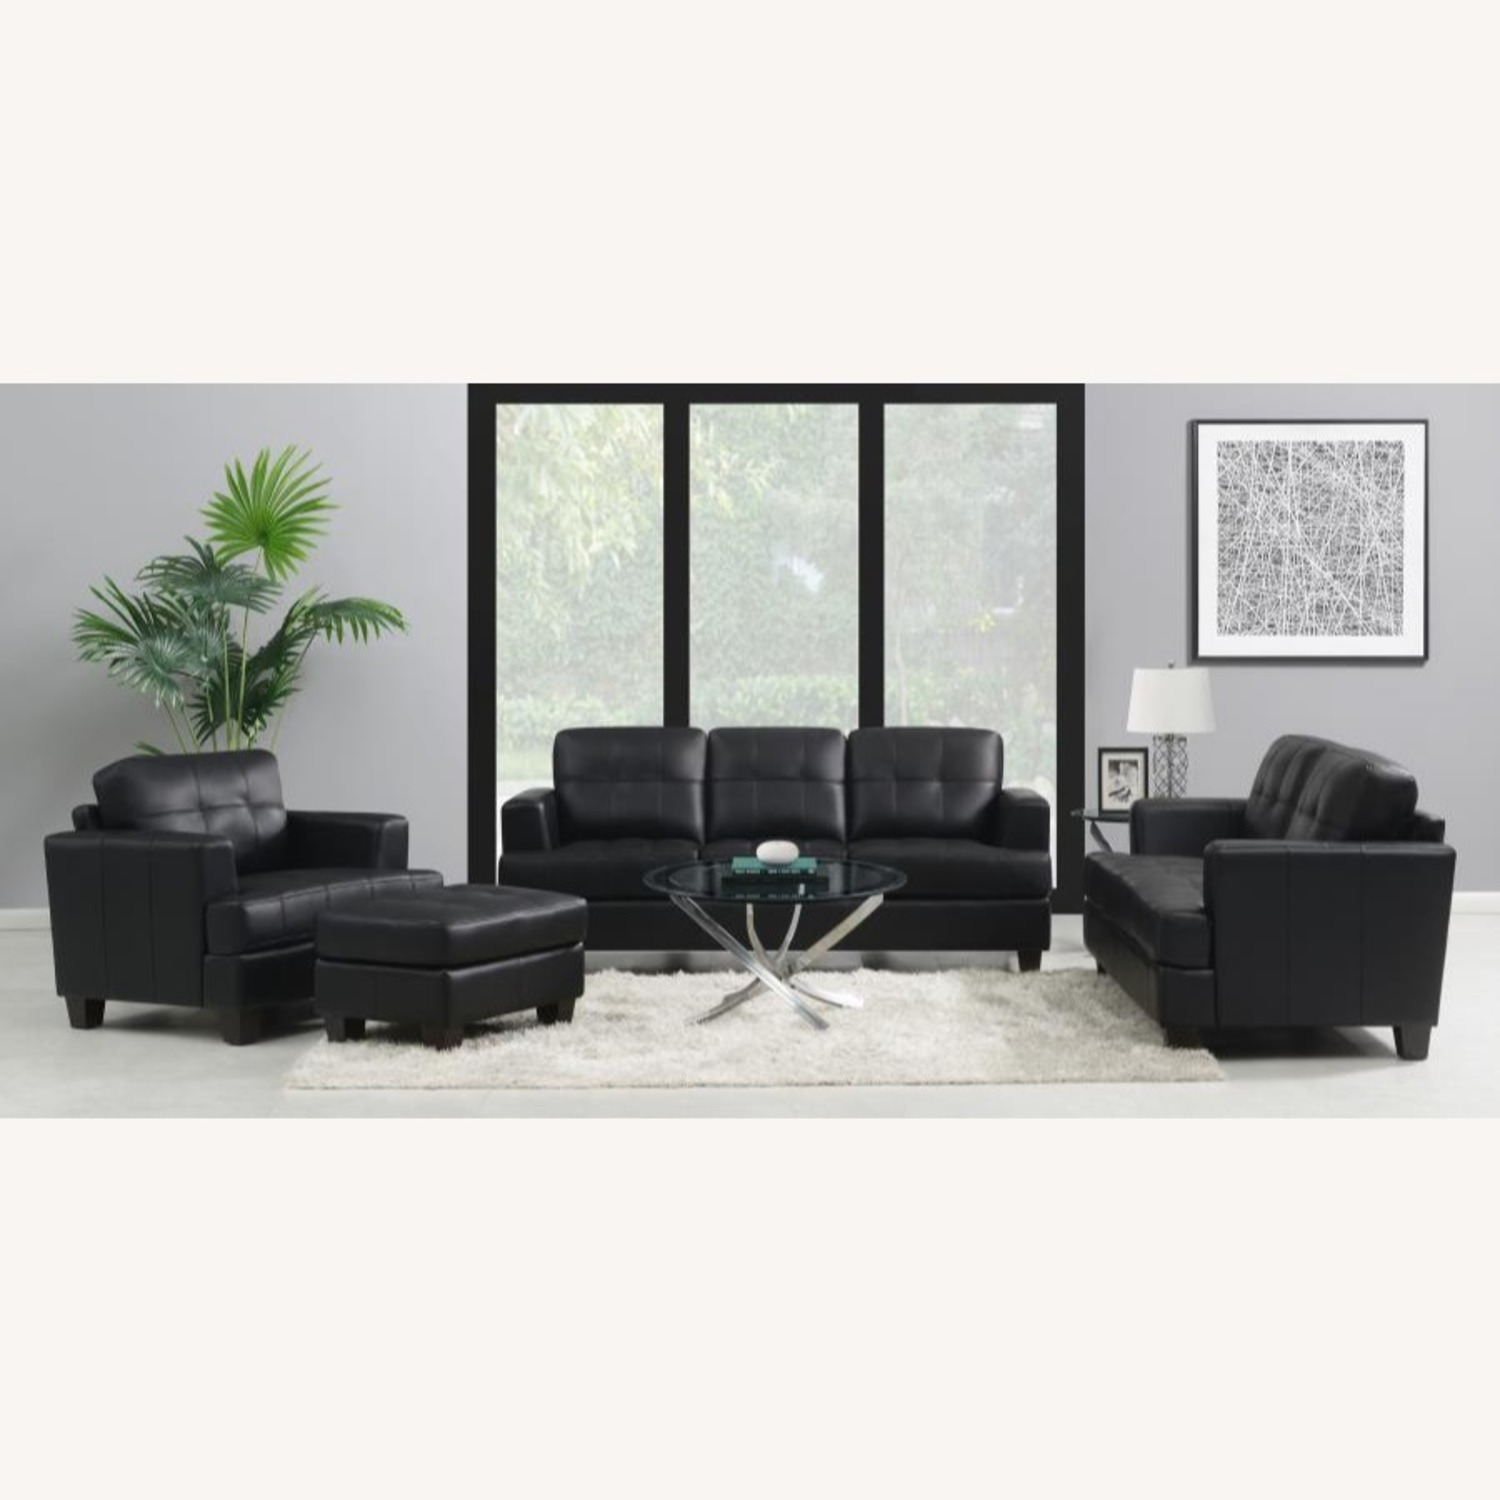 Chair In Black Padded Breathable Leatherette - image-2